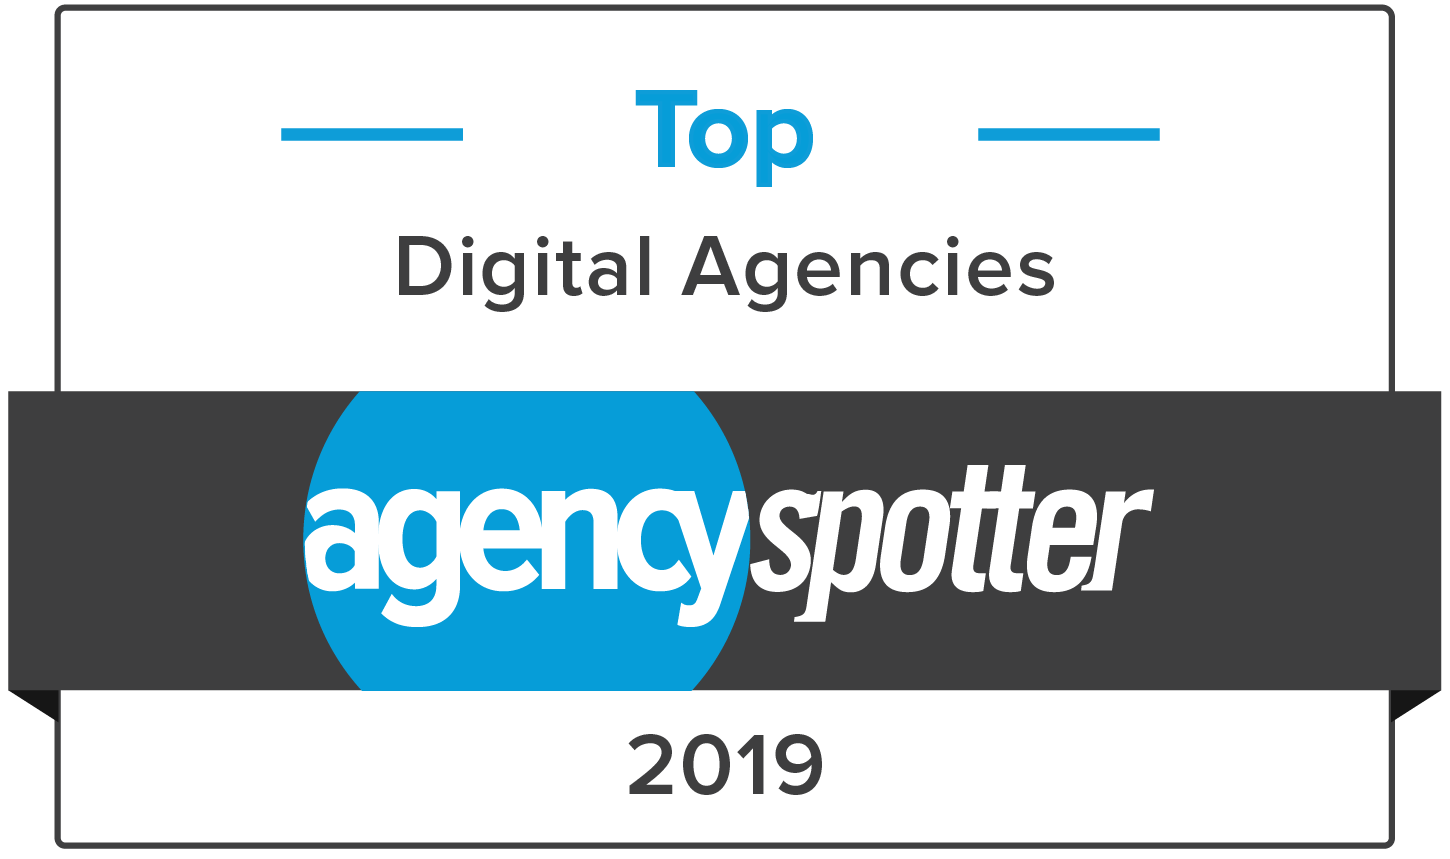 Digital marketing agencies 2019 a03181c129a8bedbb03870f7d09a316584cae966b18494bc8bedd637bbf1c7e6